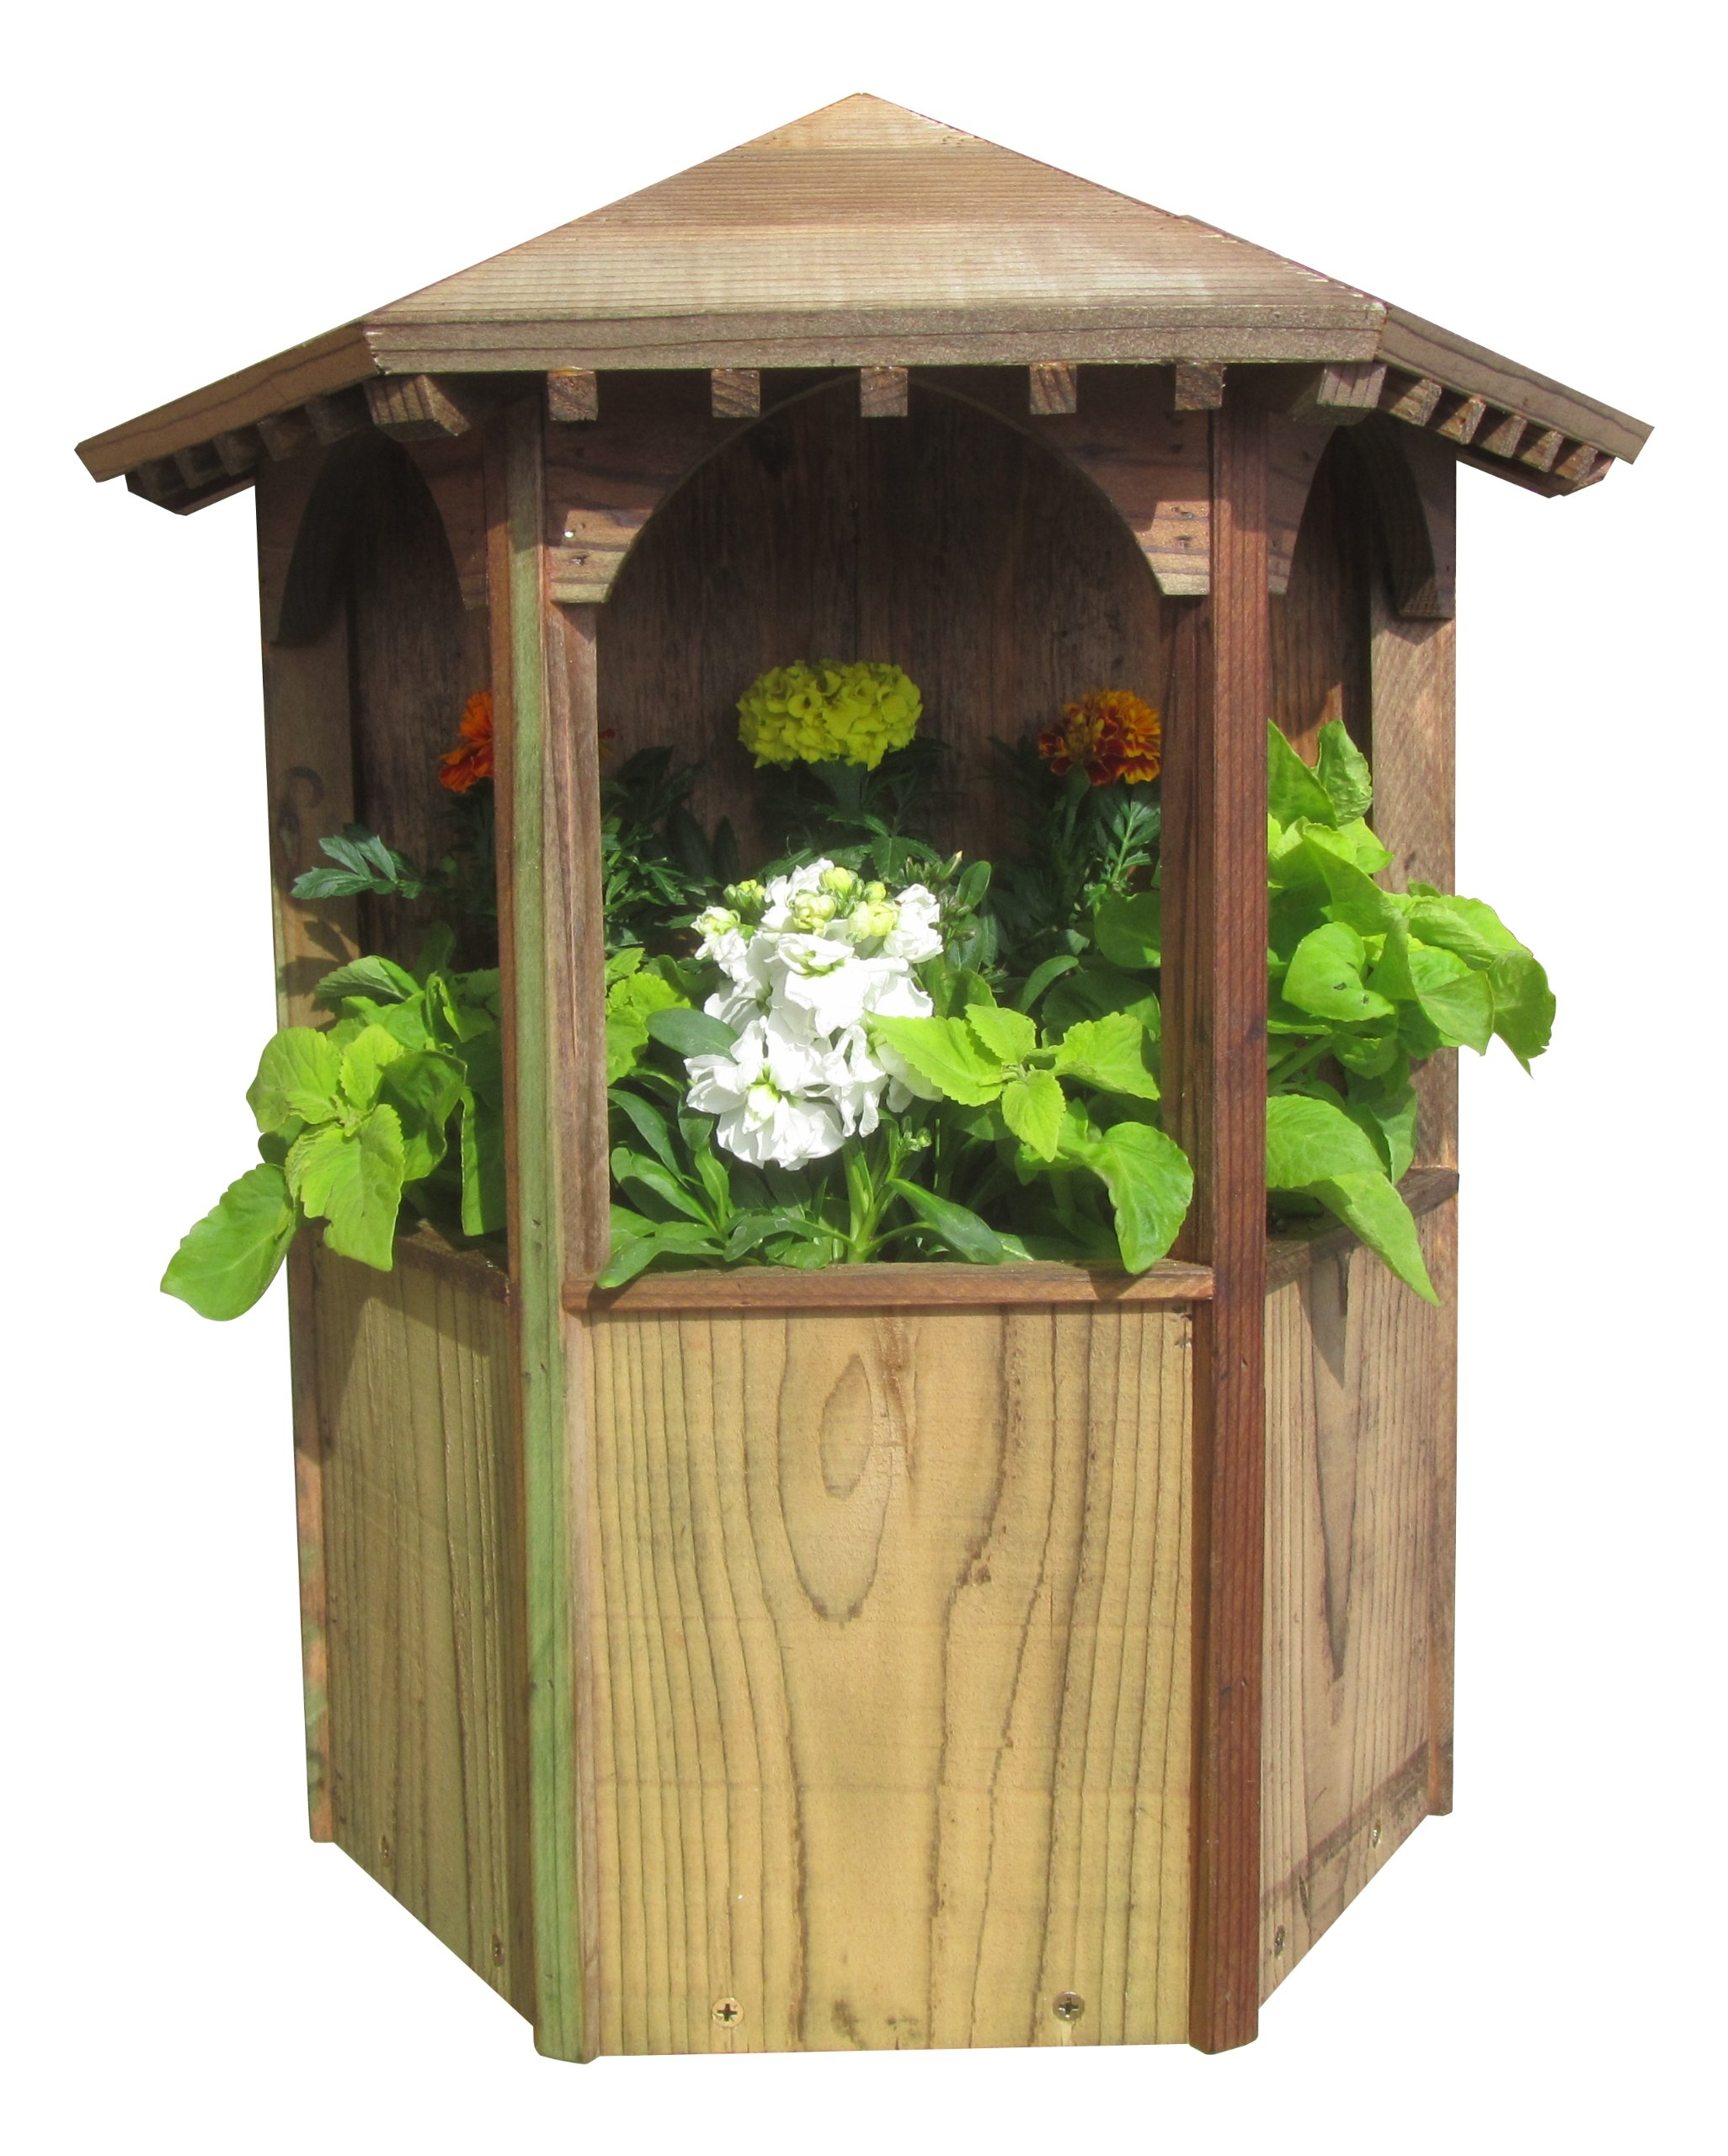 SamsGazebos Wall Mount English Garden Style Wood Gazebo Planter with Decorative Roof, 19-1/2 by 19 by 9-Inch, Brown by SamsGazebosTM